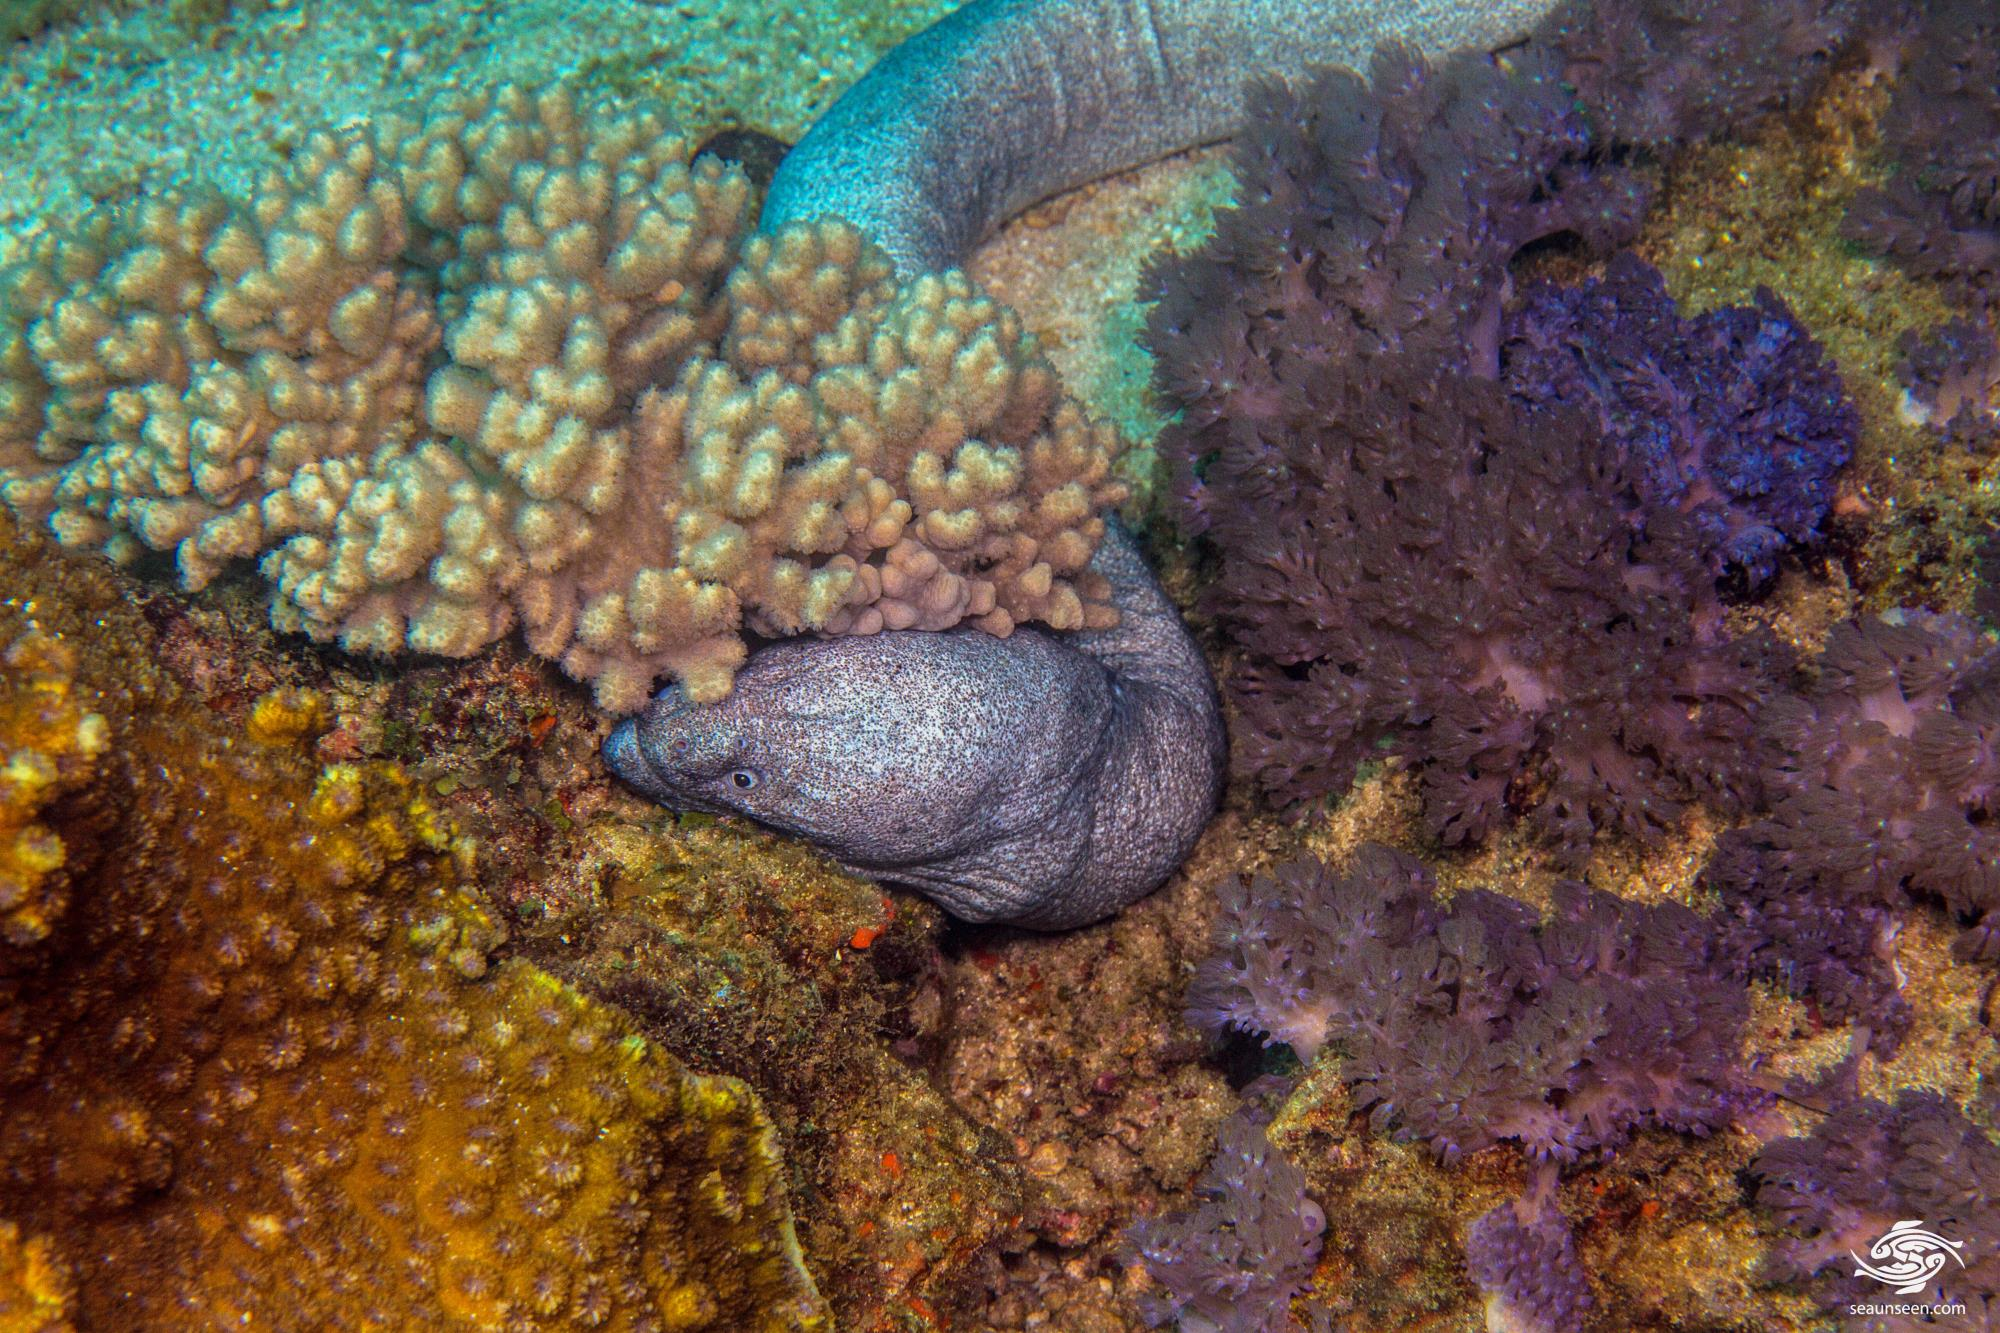 Granite Moray Eel (Uropterygius sp. ) appears to be an undescribed Moray Eel found on the Tanzanian mainland coast